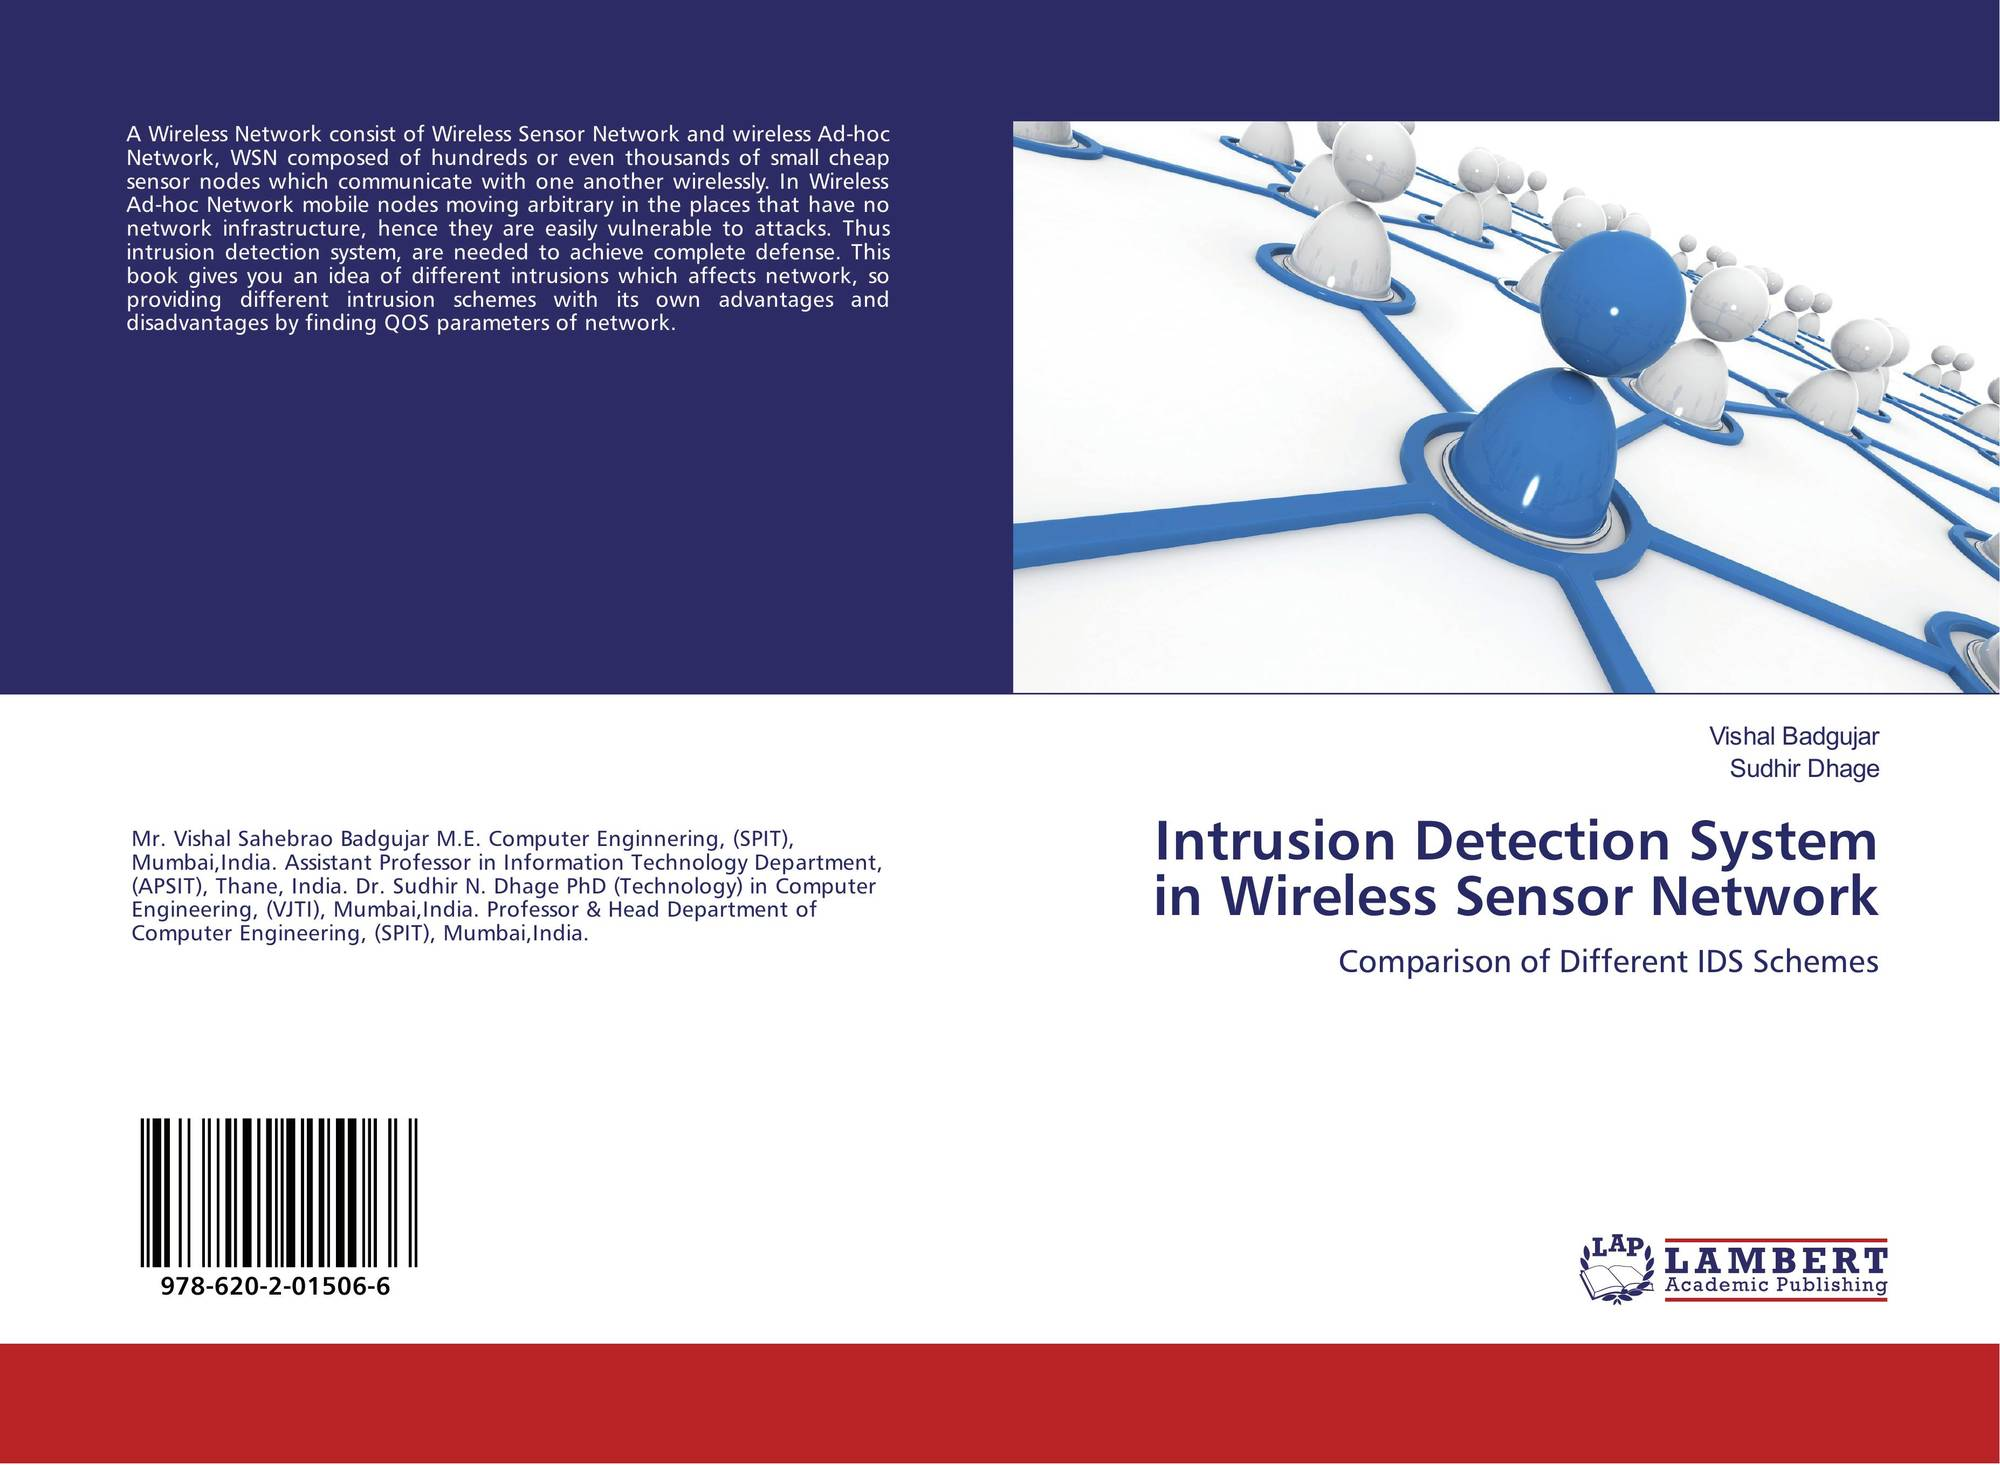 Journal of Sensors